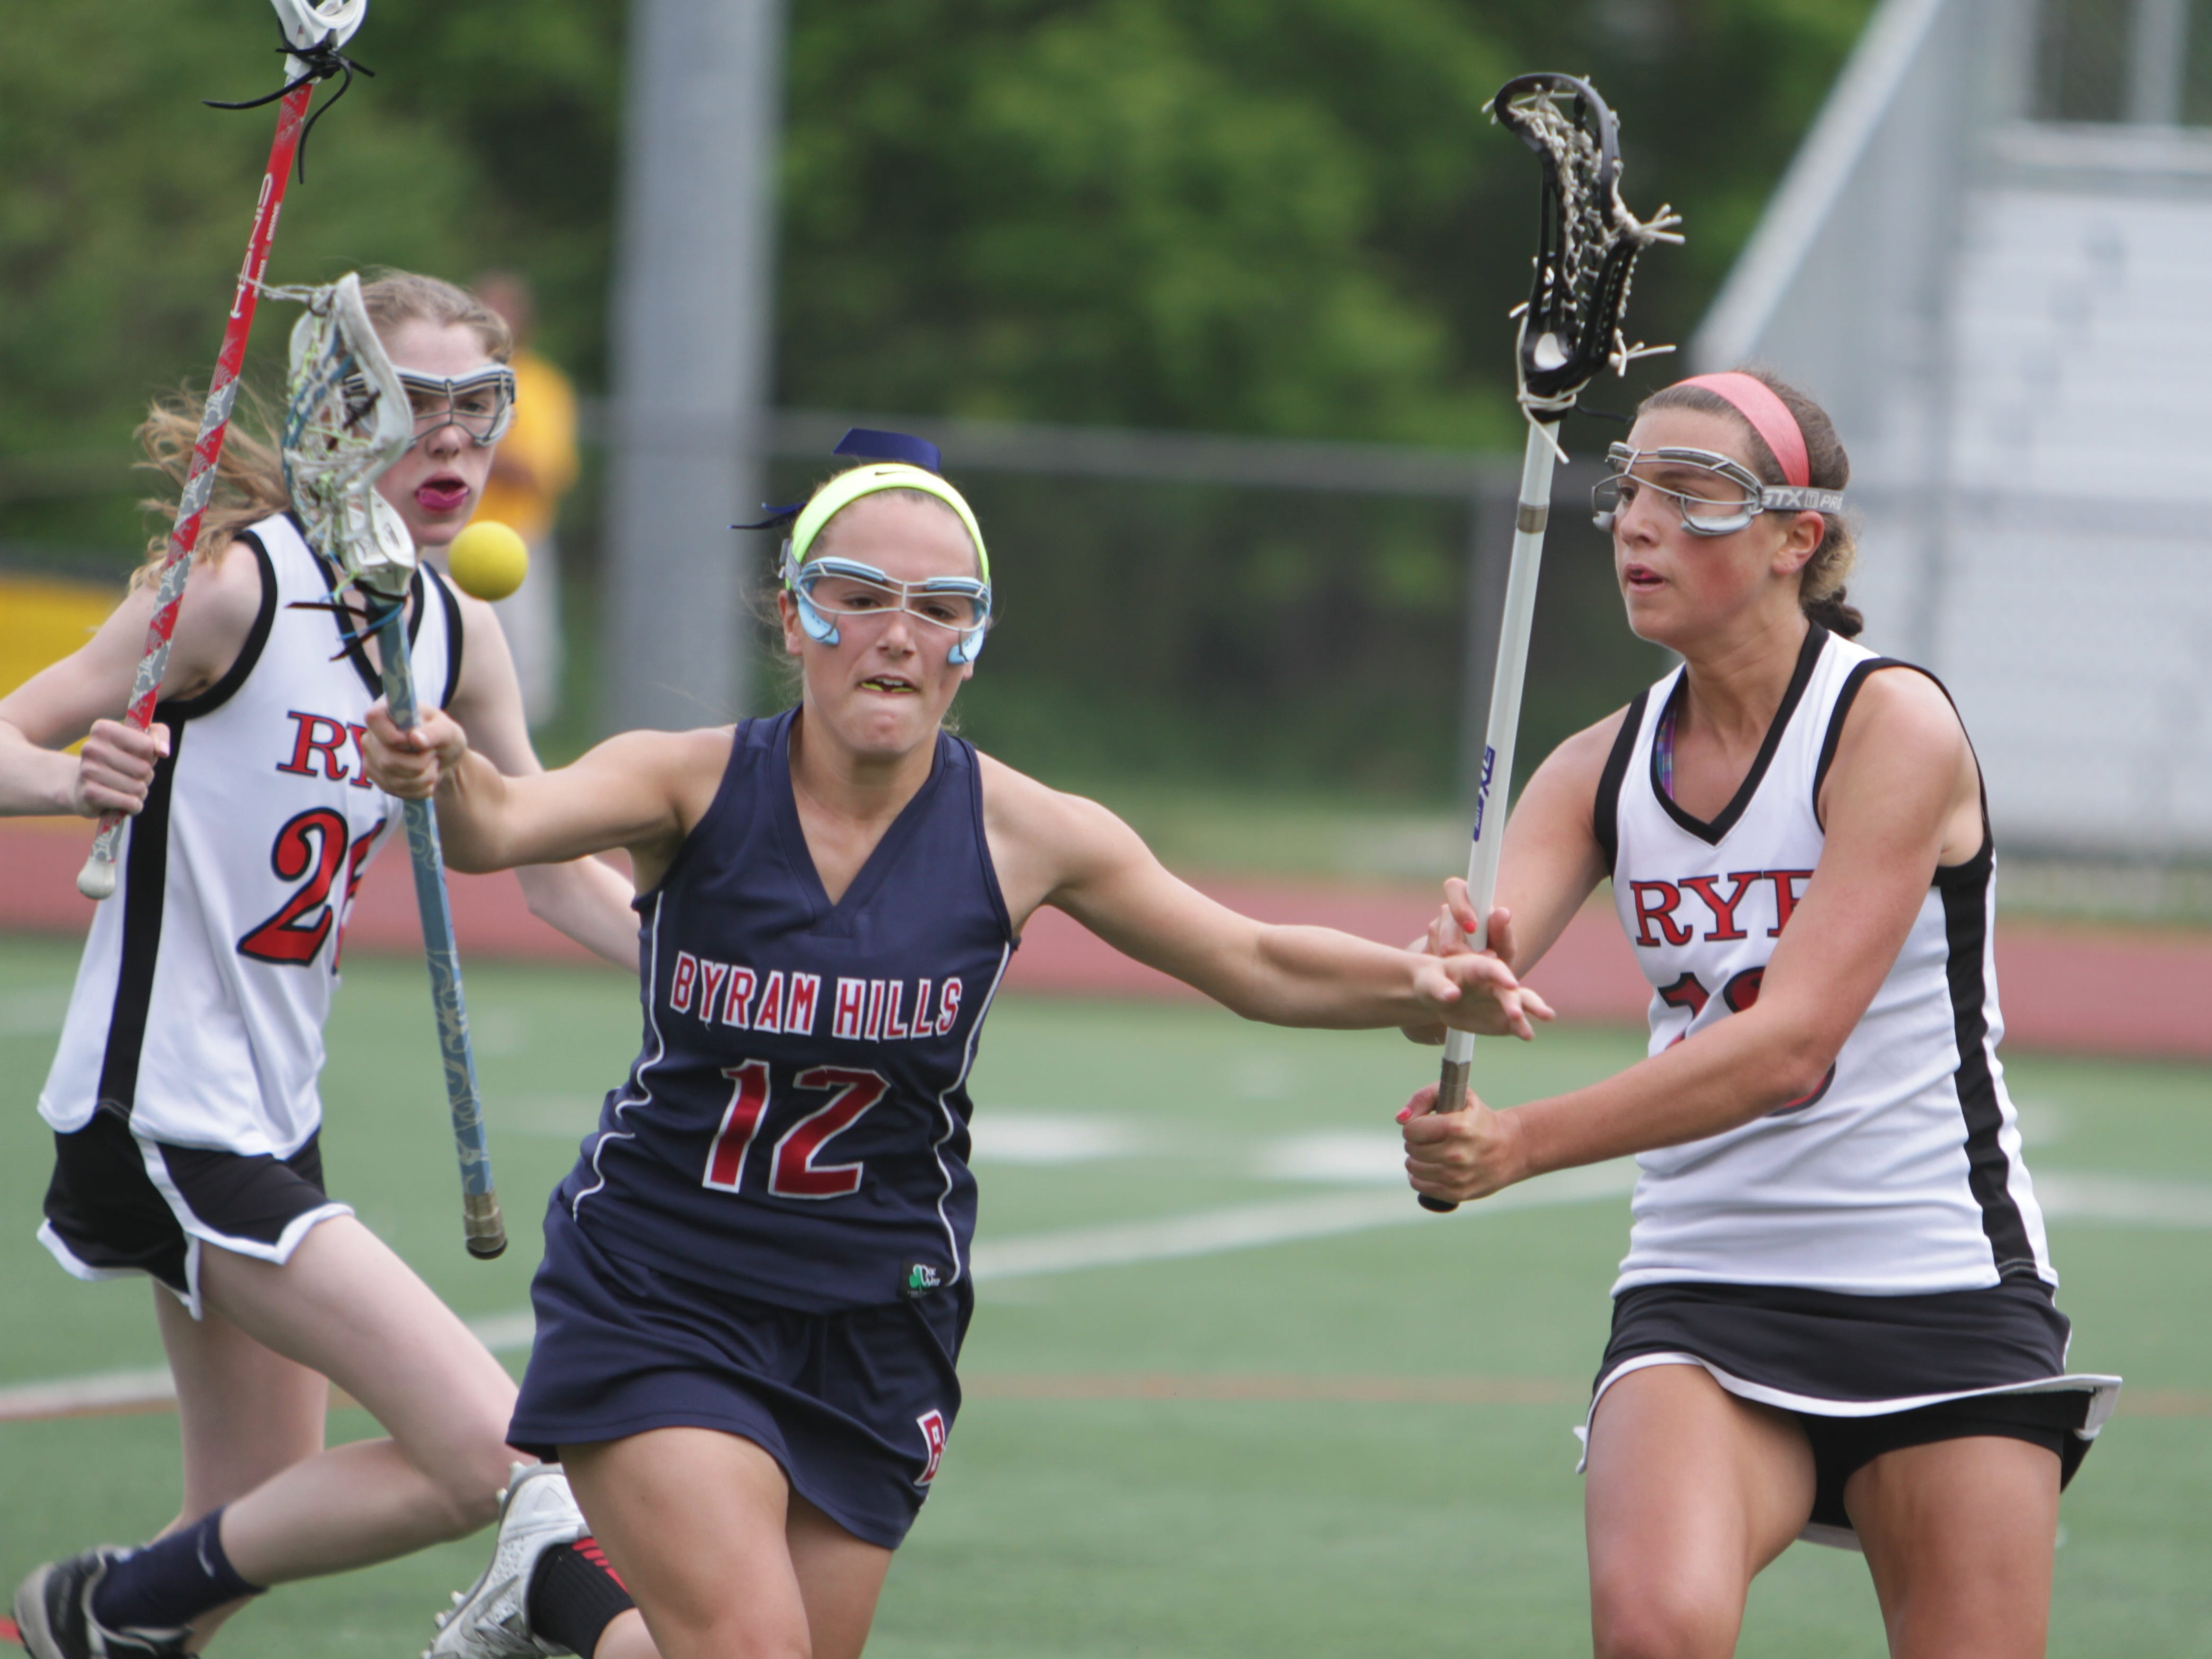 Rye's Charlotte Tucci (13) knocks the ball out of Byram Hills' Taylor Verboys (12) during a Class B quarterfinal game at Rye High School. Rye won 14-10.